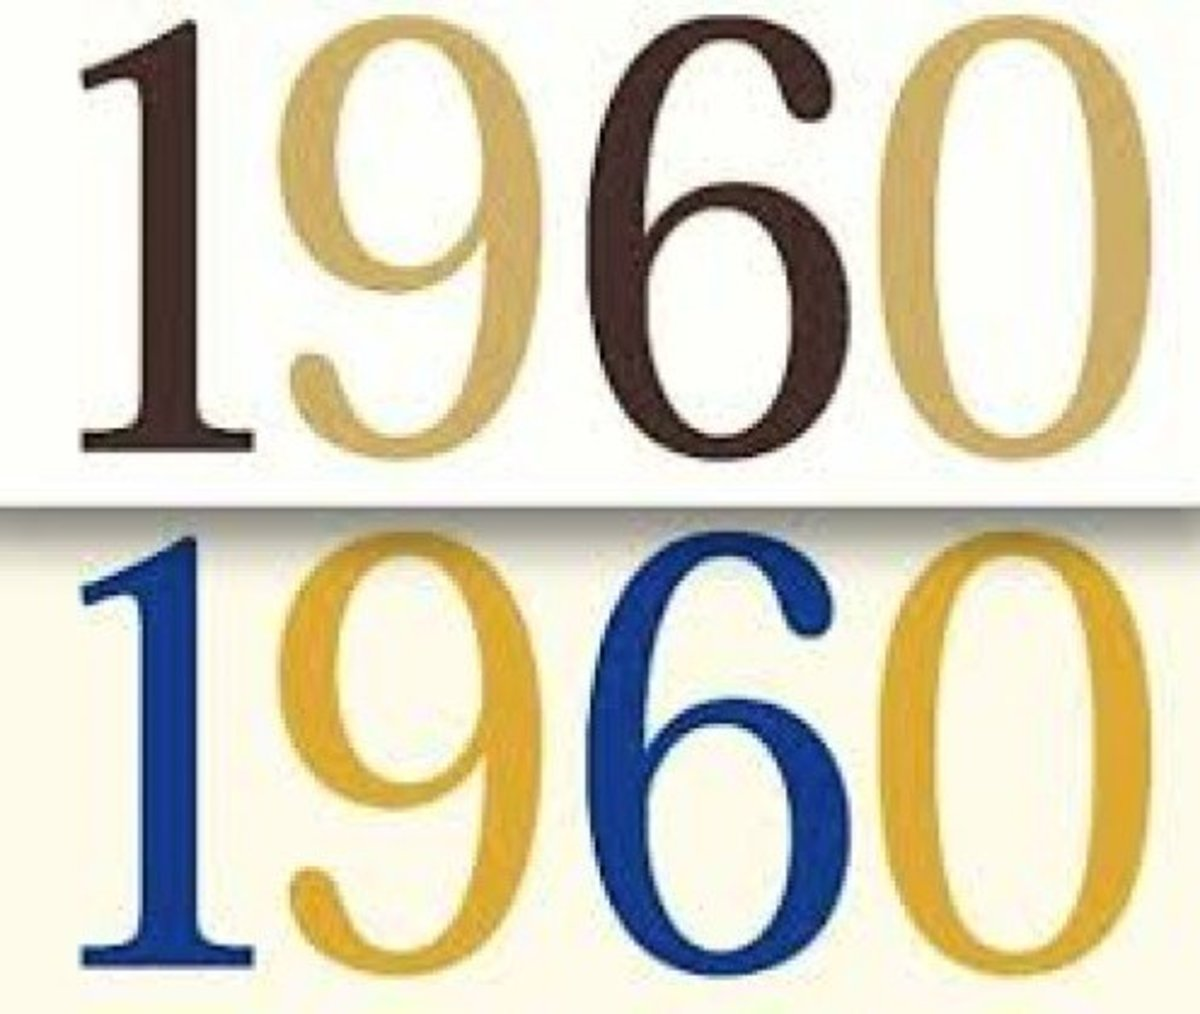 1960 Fun Facts, Trivia, and History